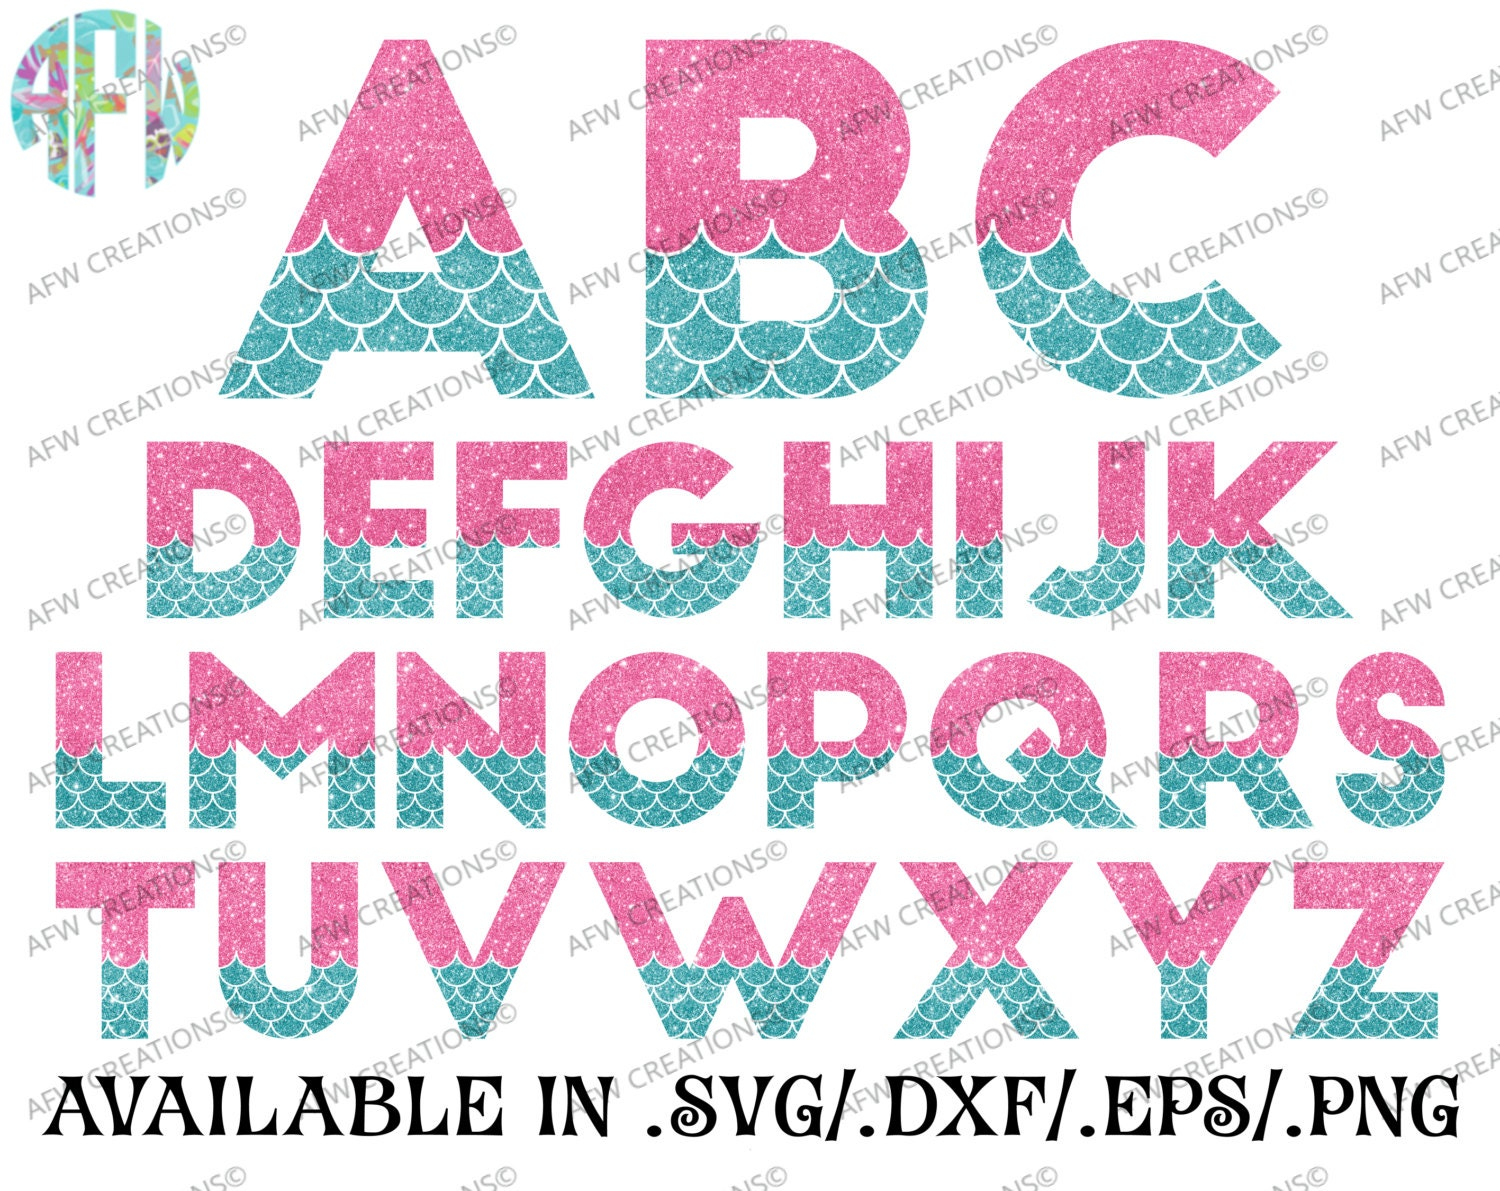 Digital Cut Files Mermaid Letters Svg Dxf Eps Alphabet. Condemned Murals. Golf Vw Stickers. Wall Art Sticker Murals. Print Coupons. Tape Murals. Surf Signs Of Stroke. Team Valor Decals. Love Personality Signs